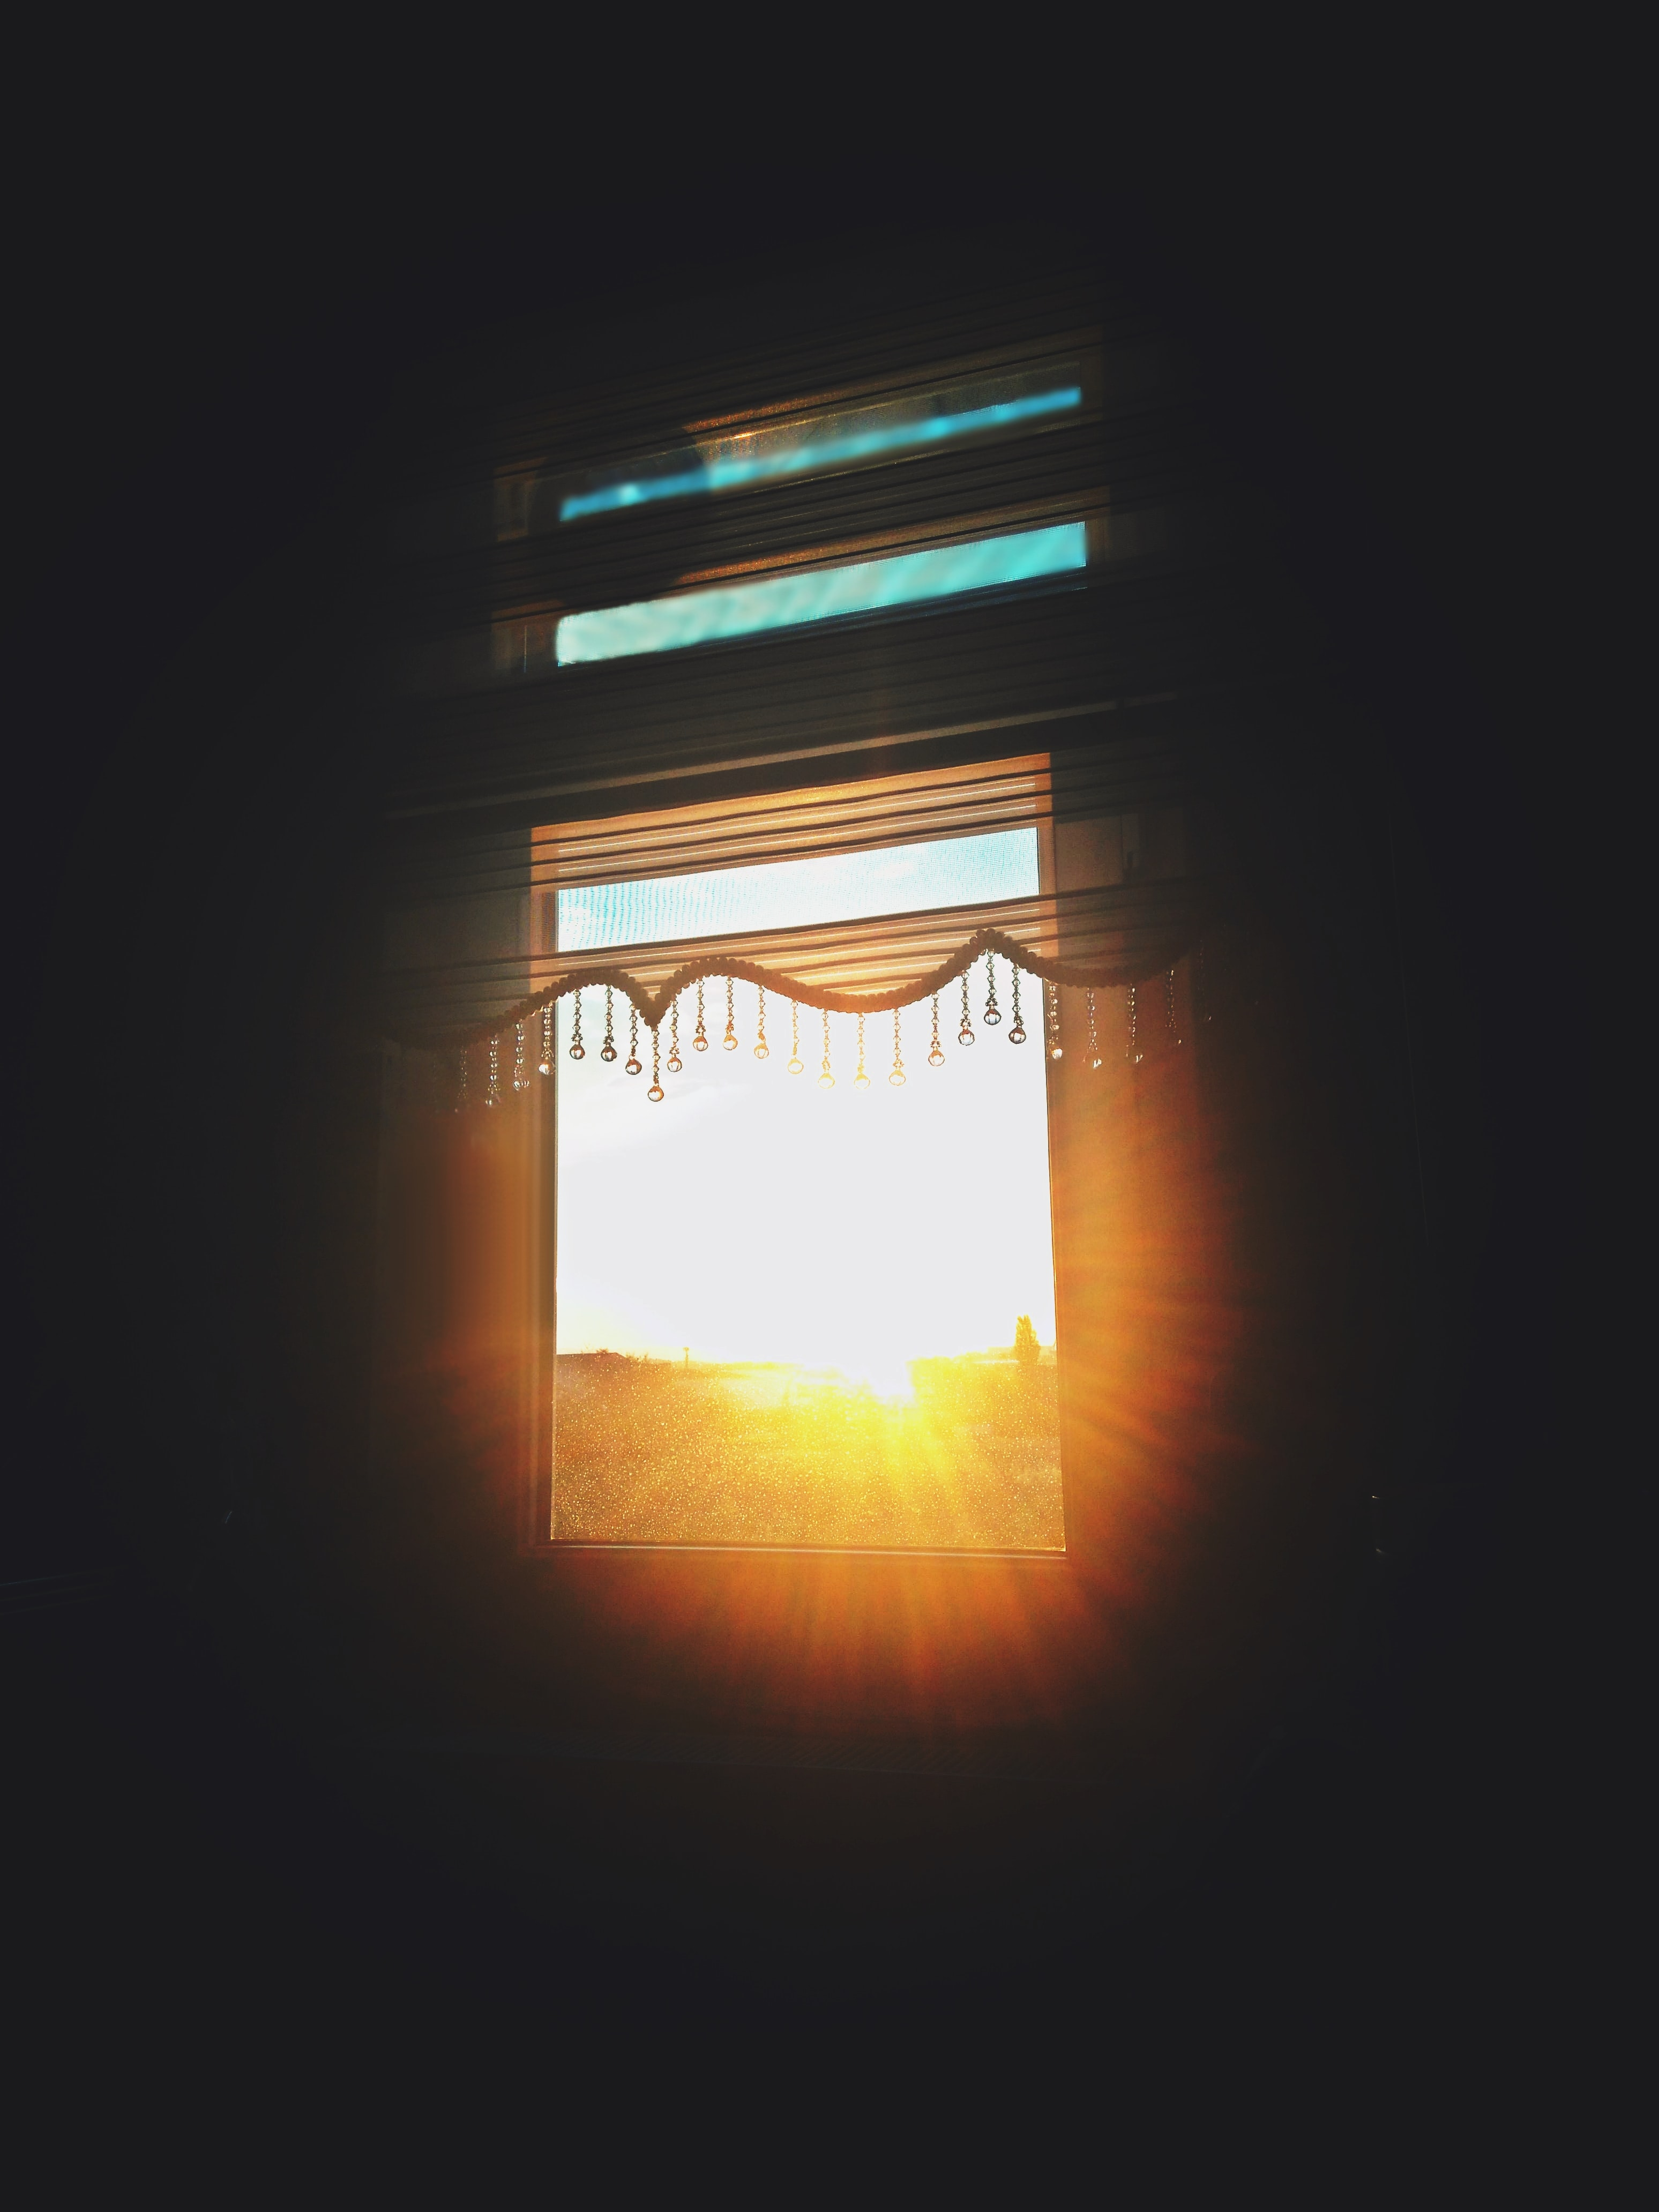 open blinds of window against sun rays